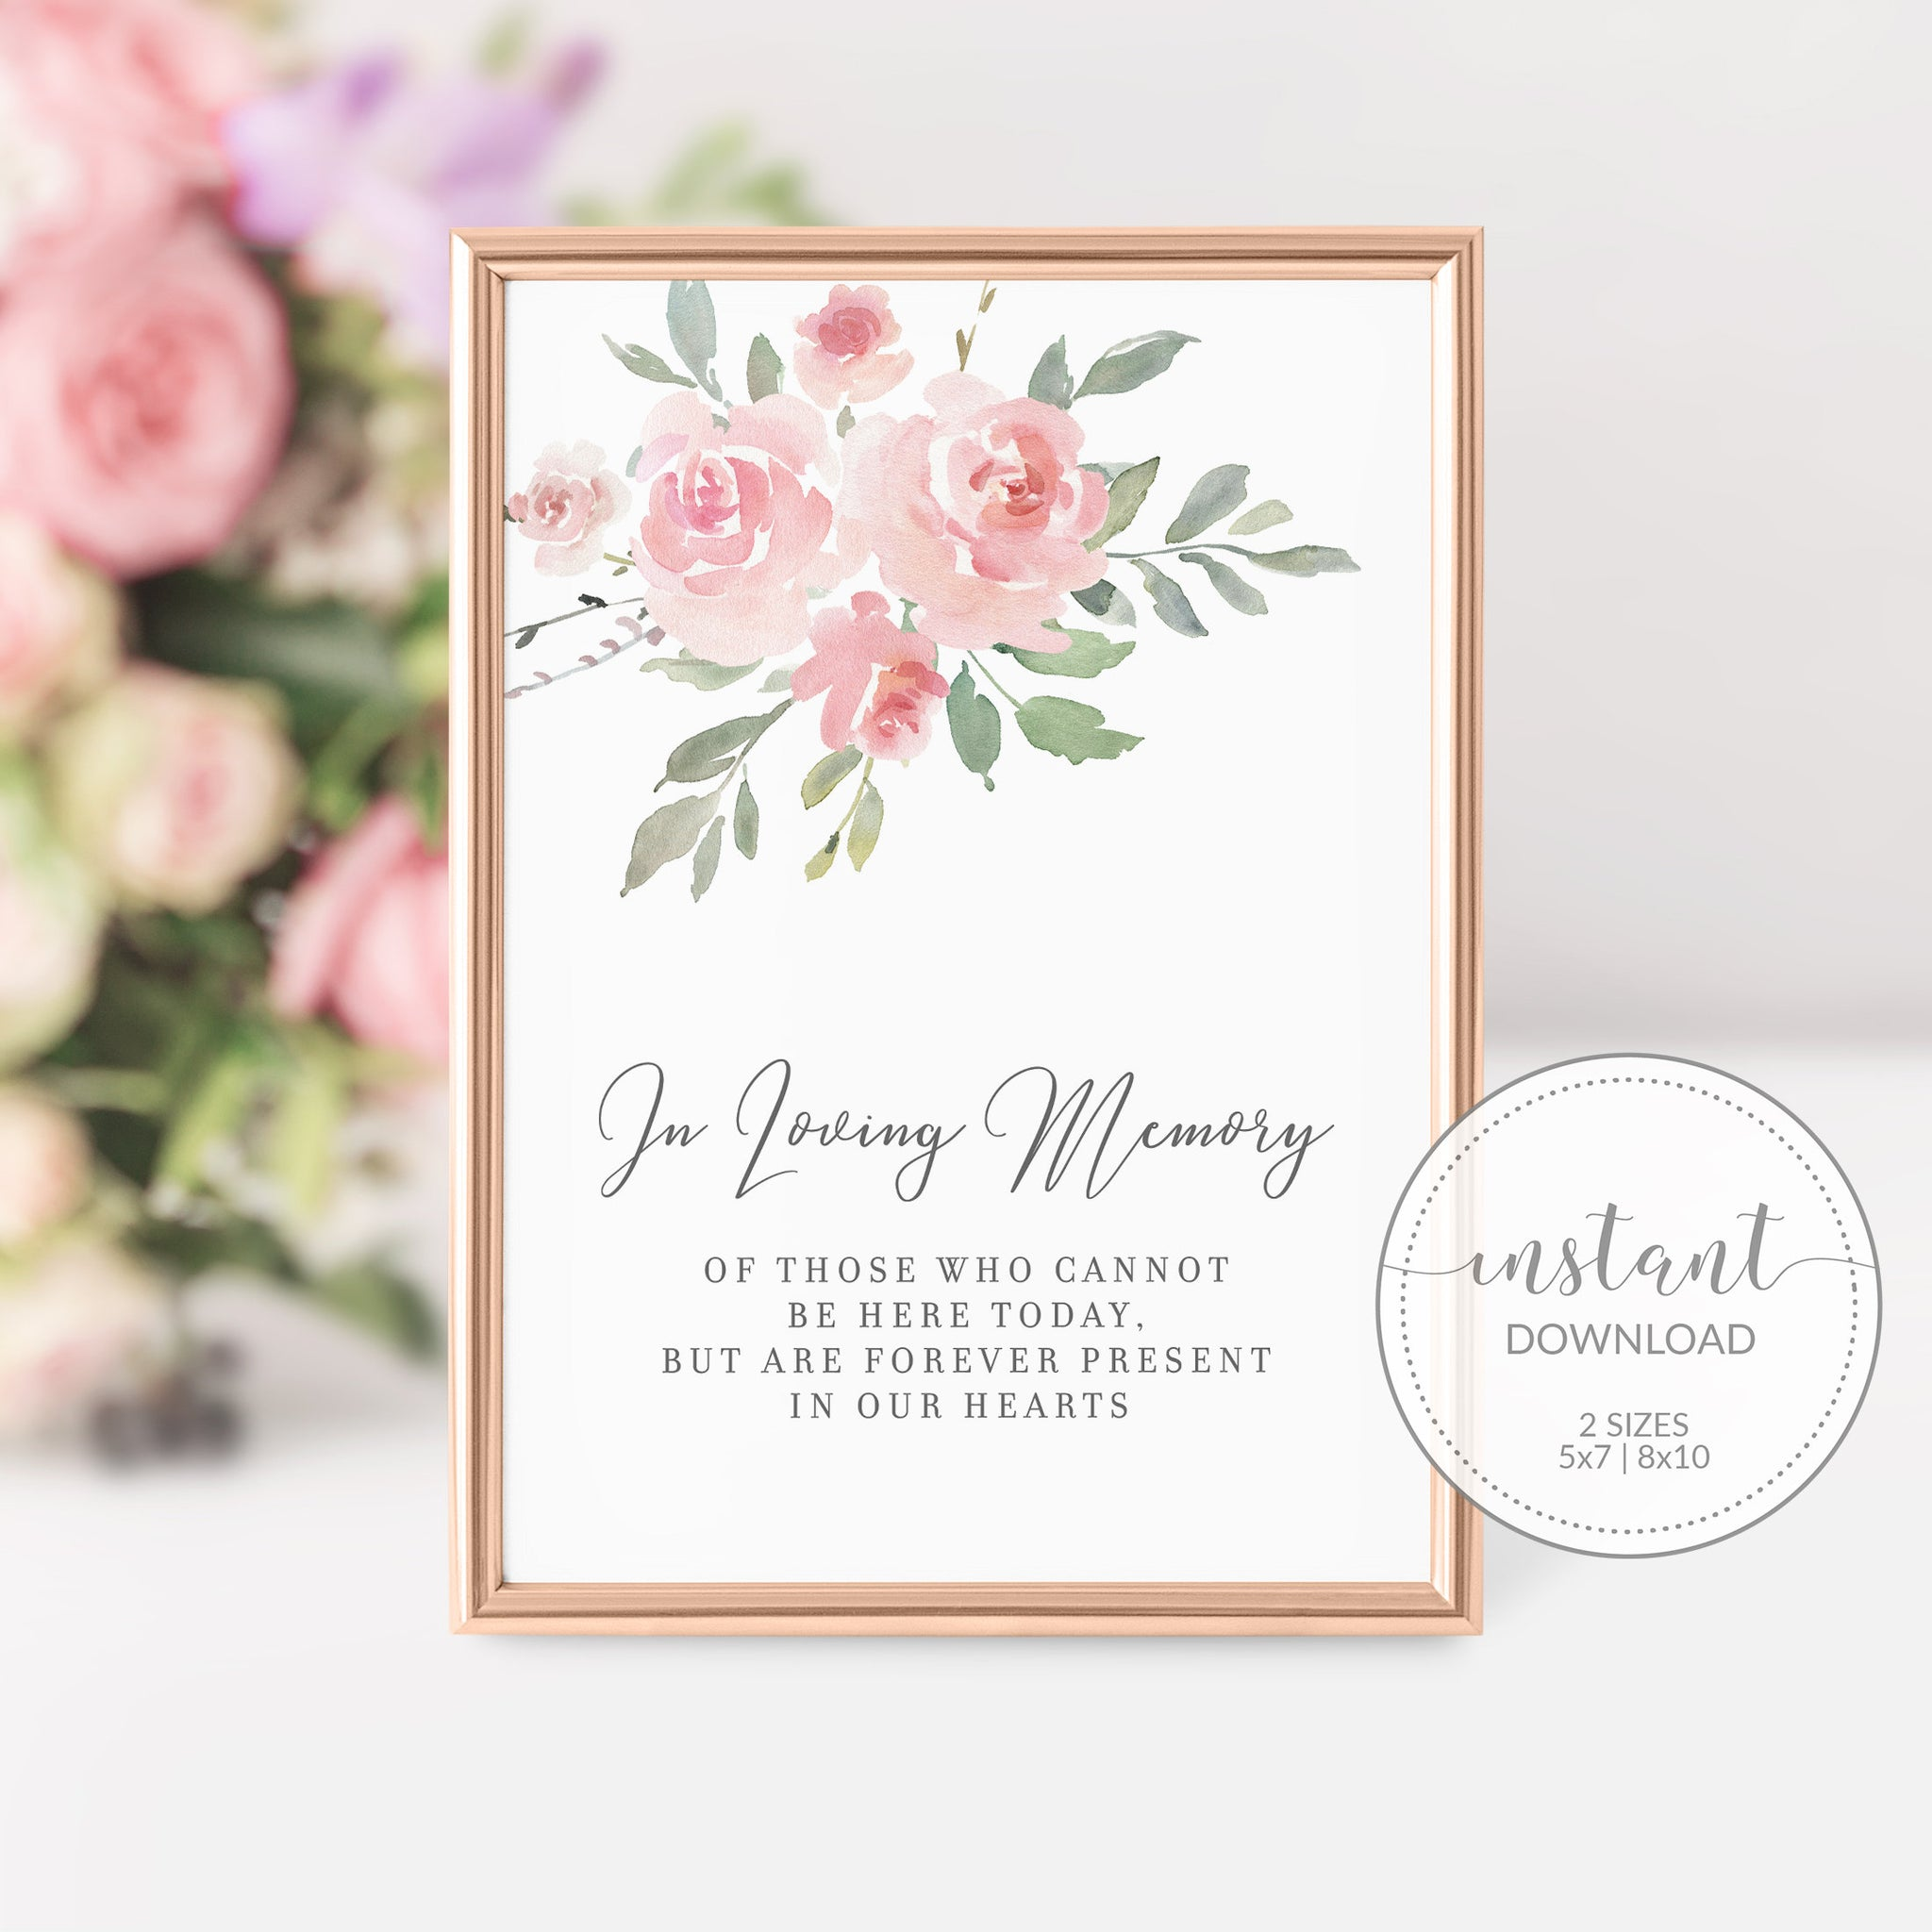 Blush Pink Floral Wedding Memorial Sign, In Loving Memory Sign Printable, Remembrance Sign Wedding, INSTANT DOWNLOAD - FR100